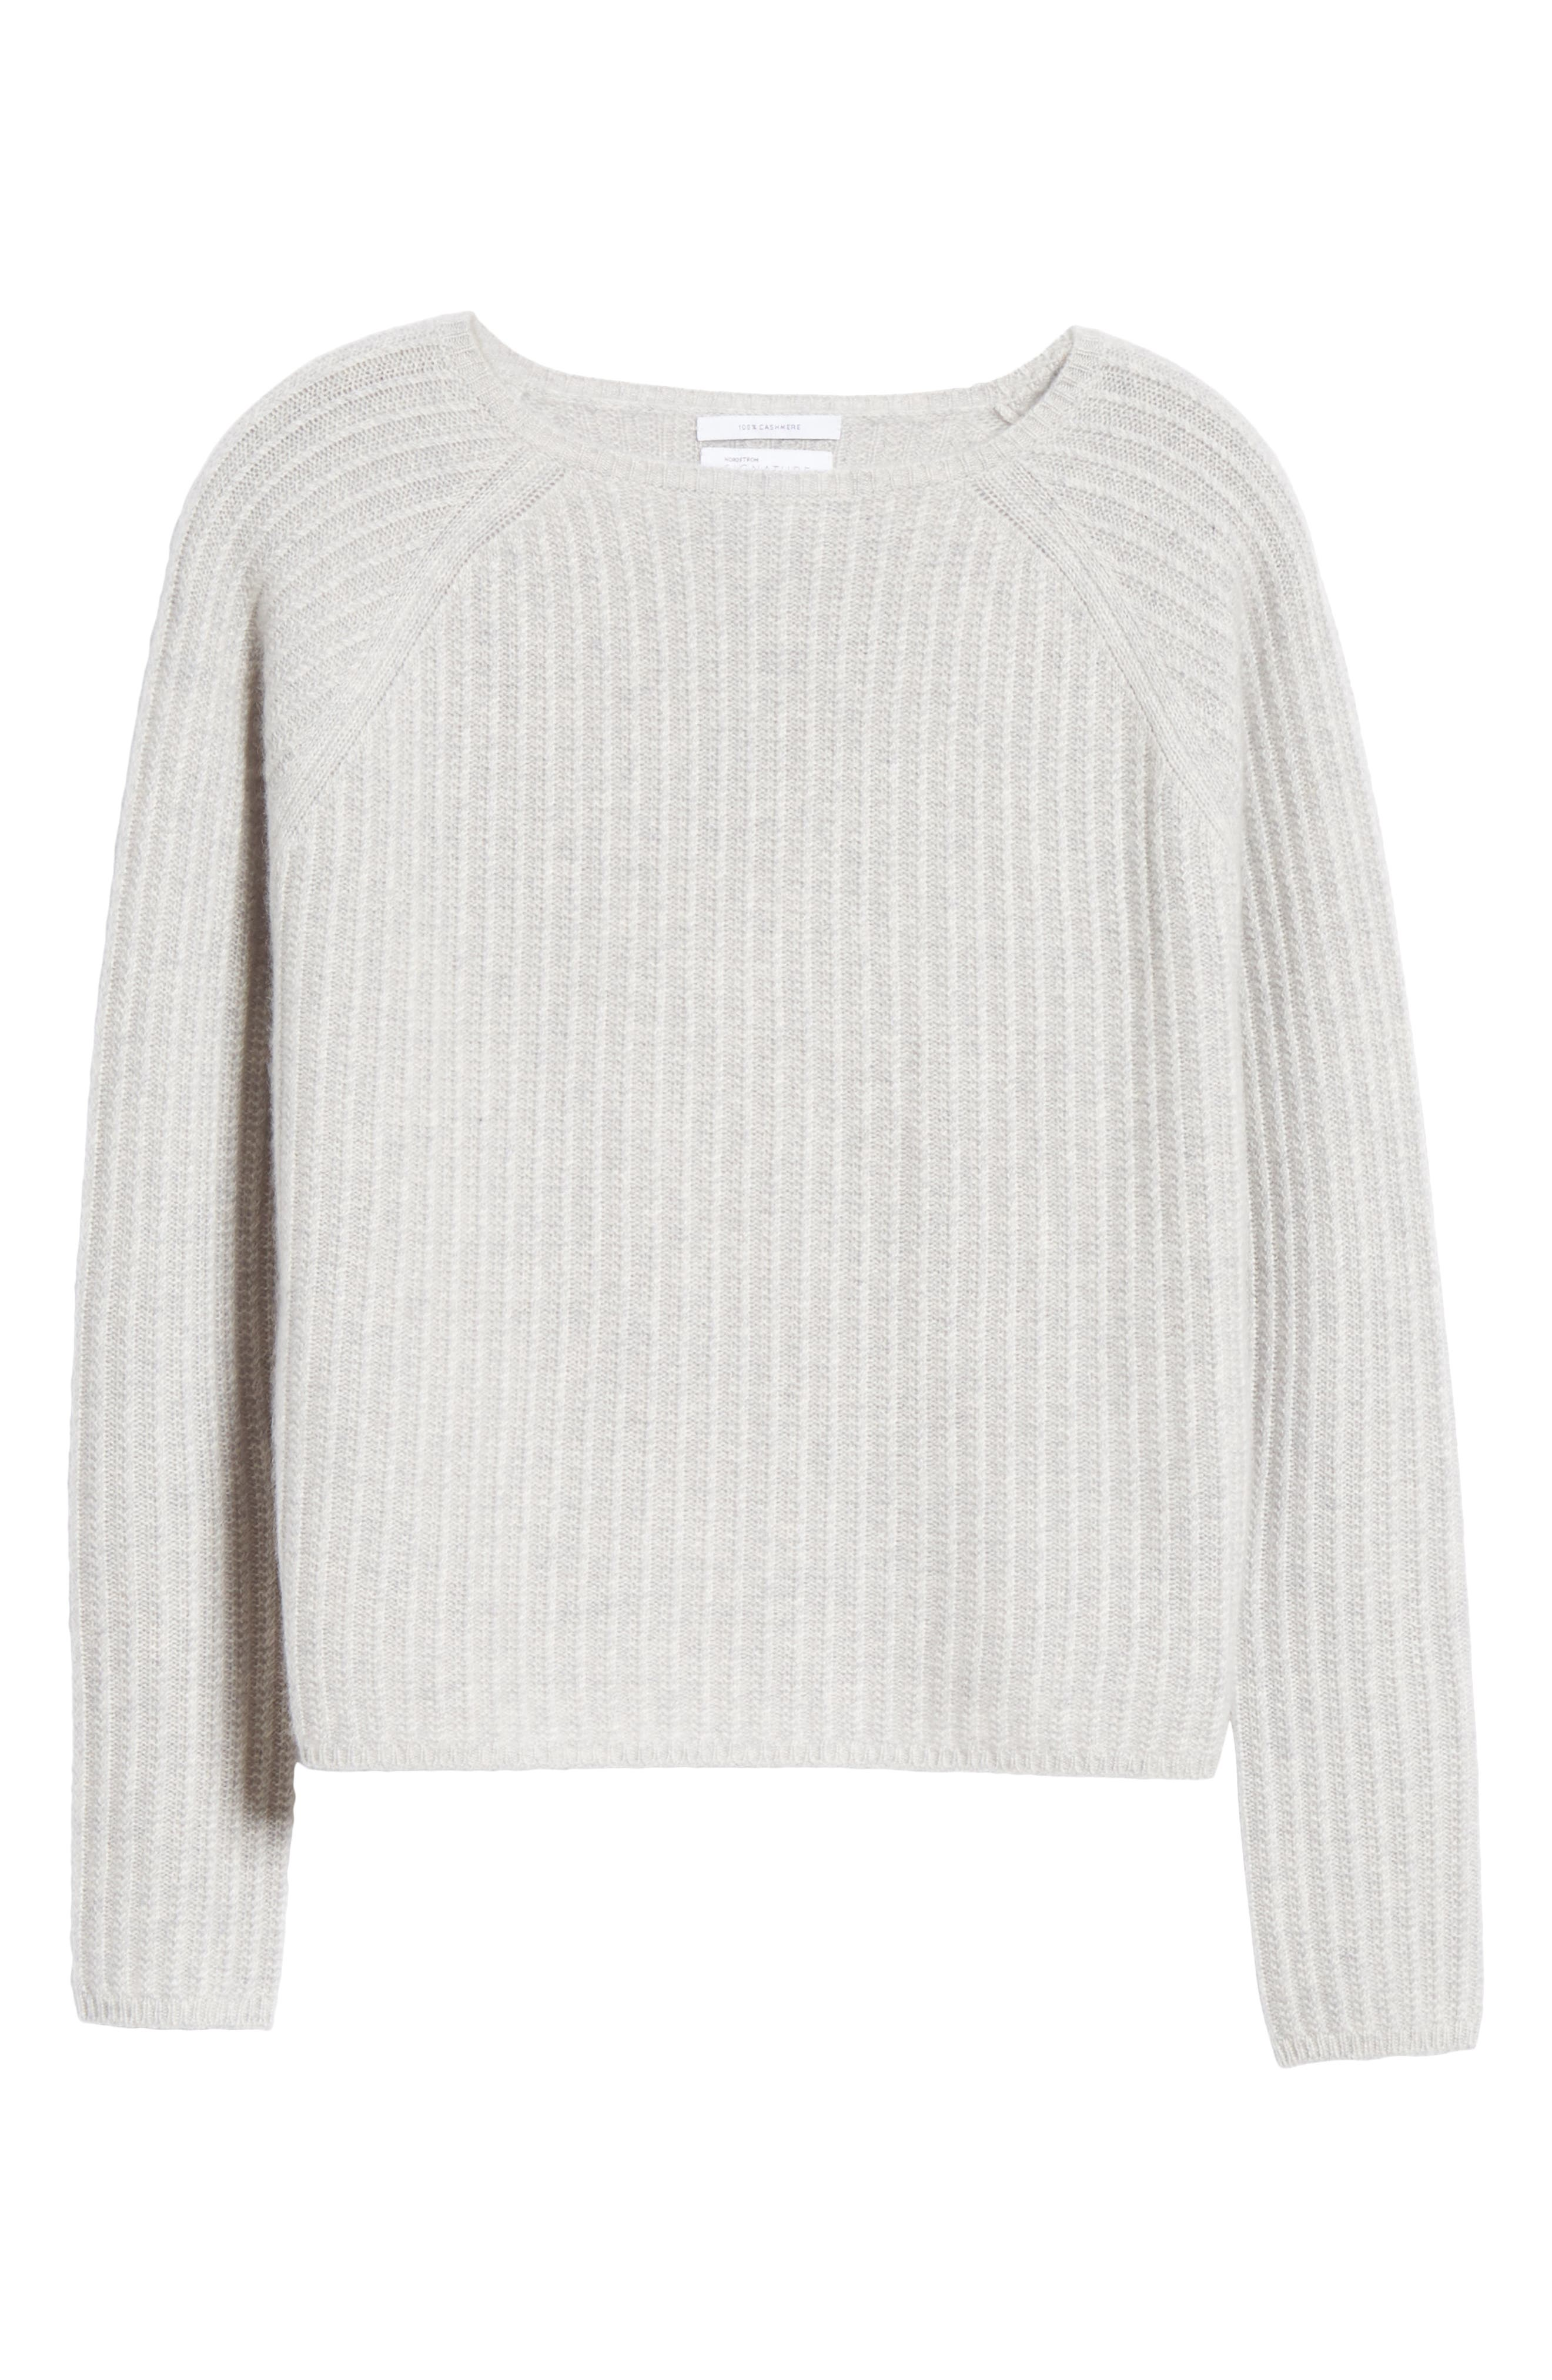 Textured Cashmere Sweater,                             Alternate thumbnail 6, color,                             GREY CLAY HEATHER